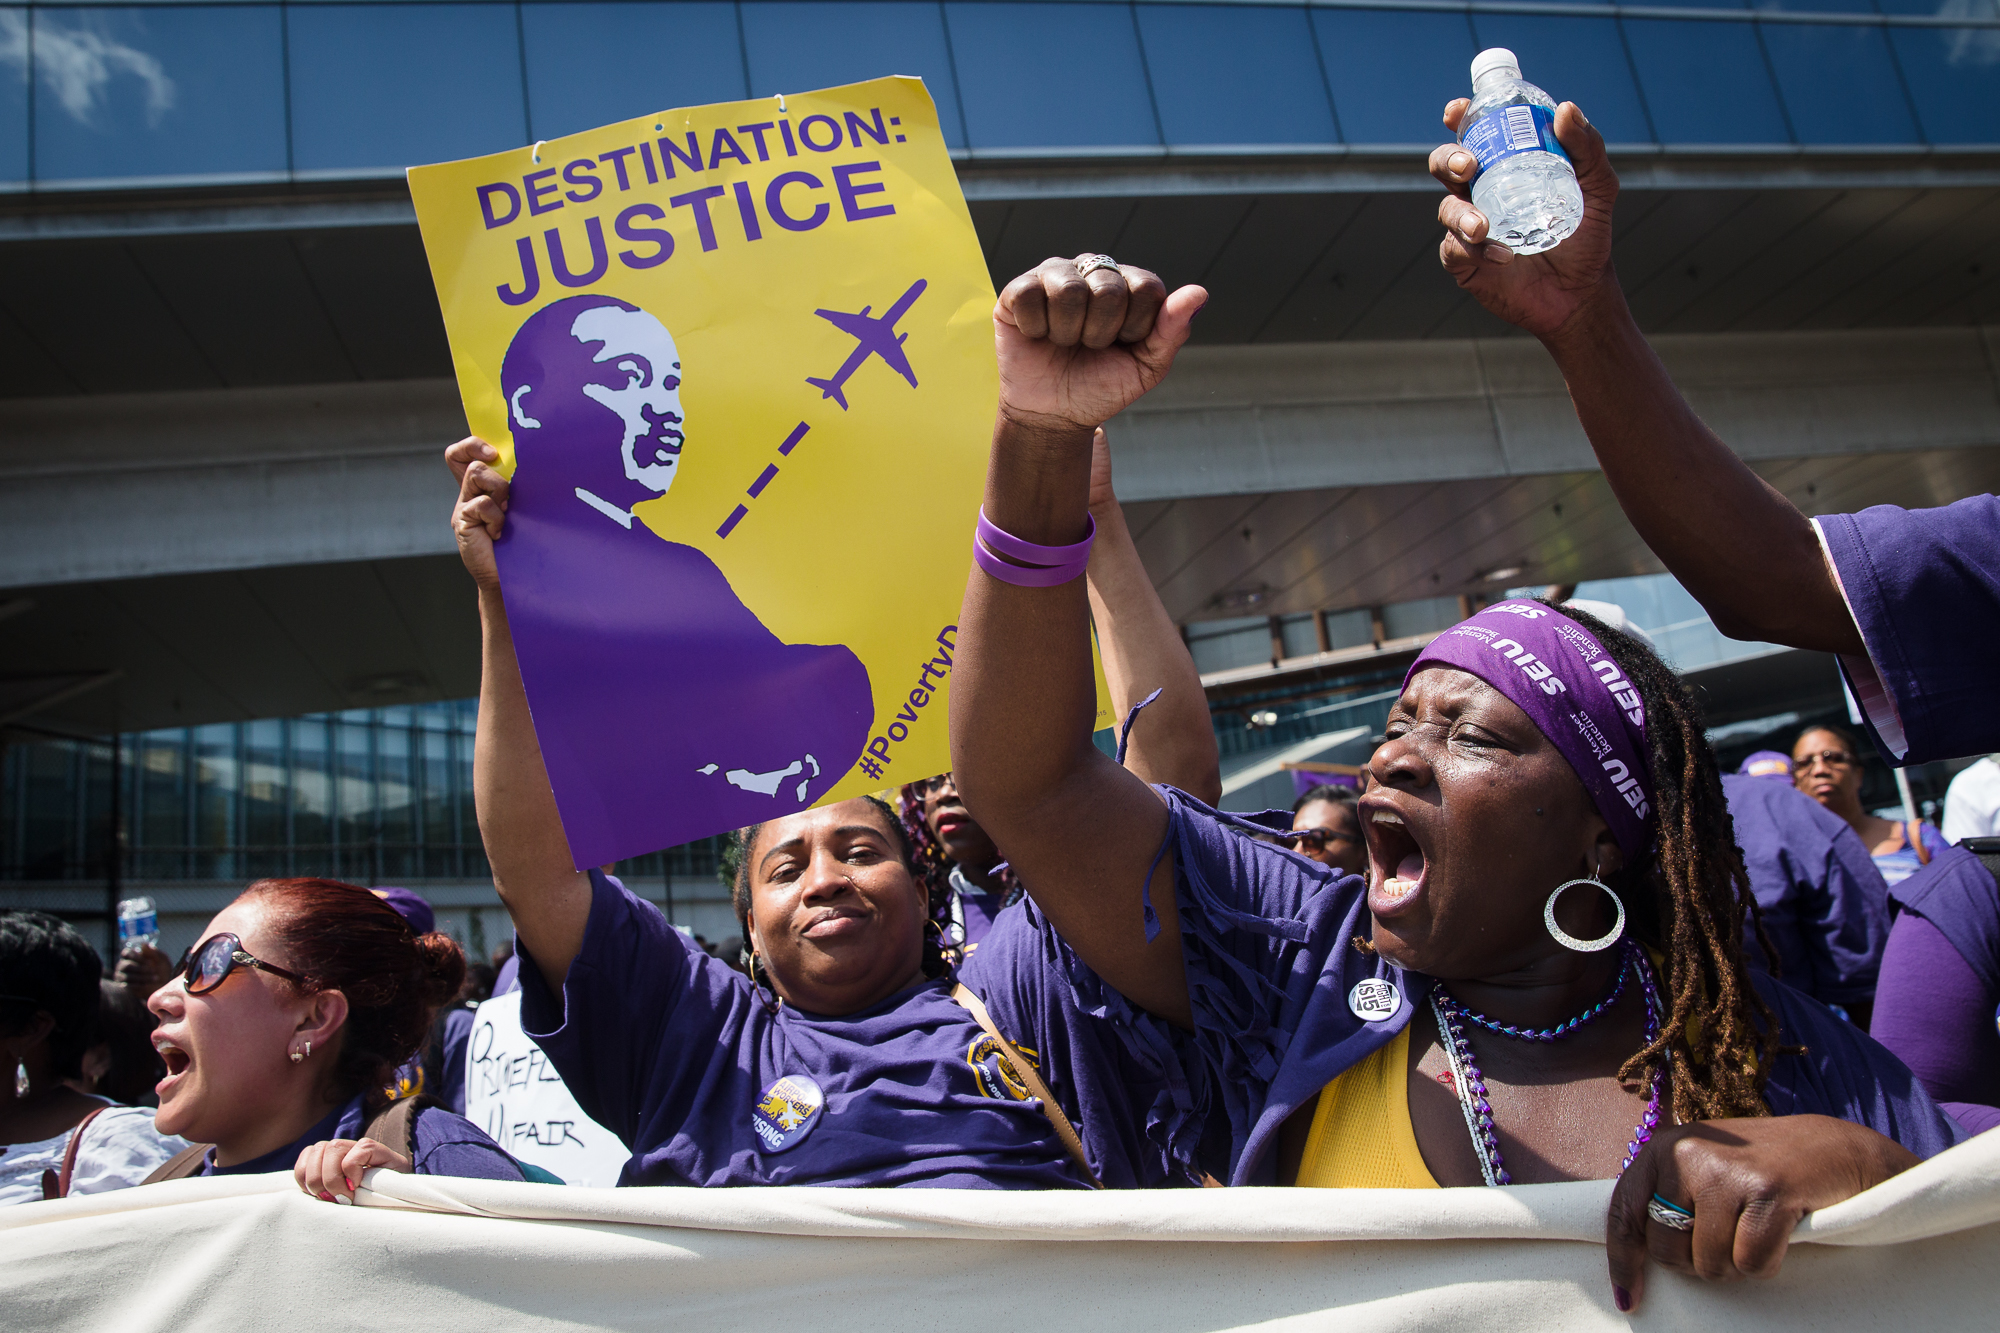 Workers rallied at the airport ahead of the Democratic National Convention in July 2016.